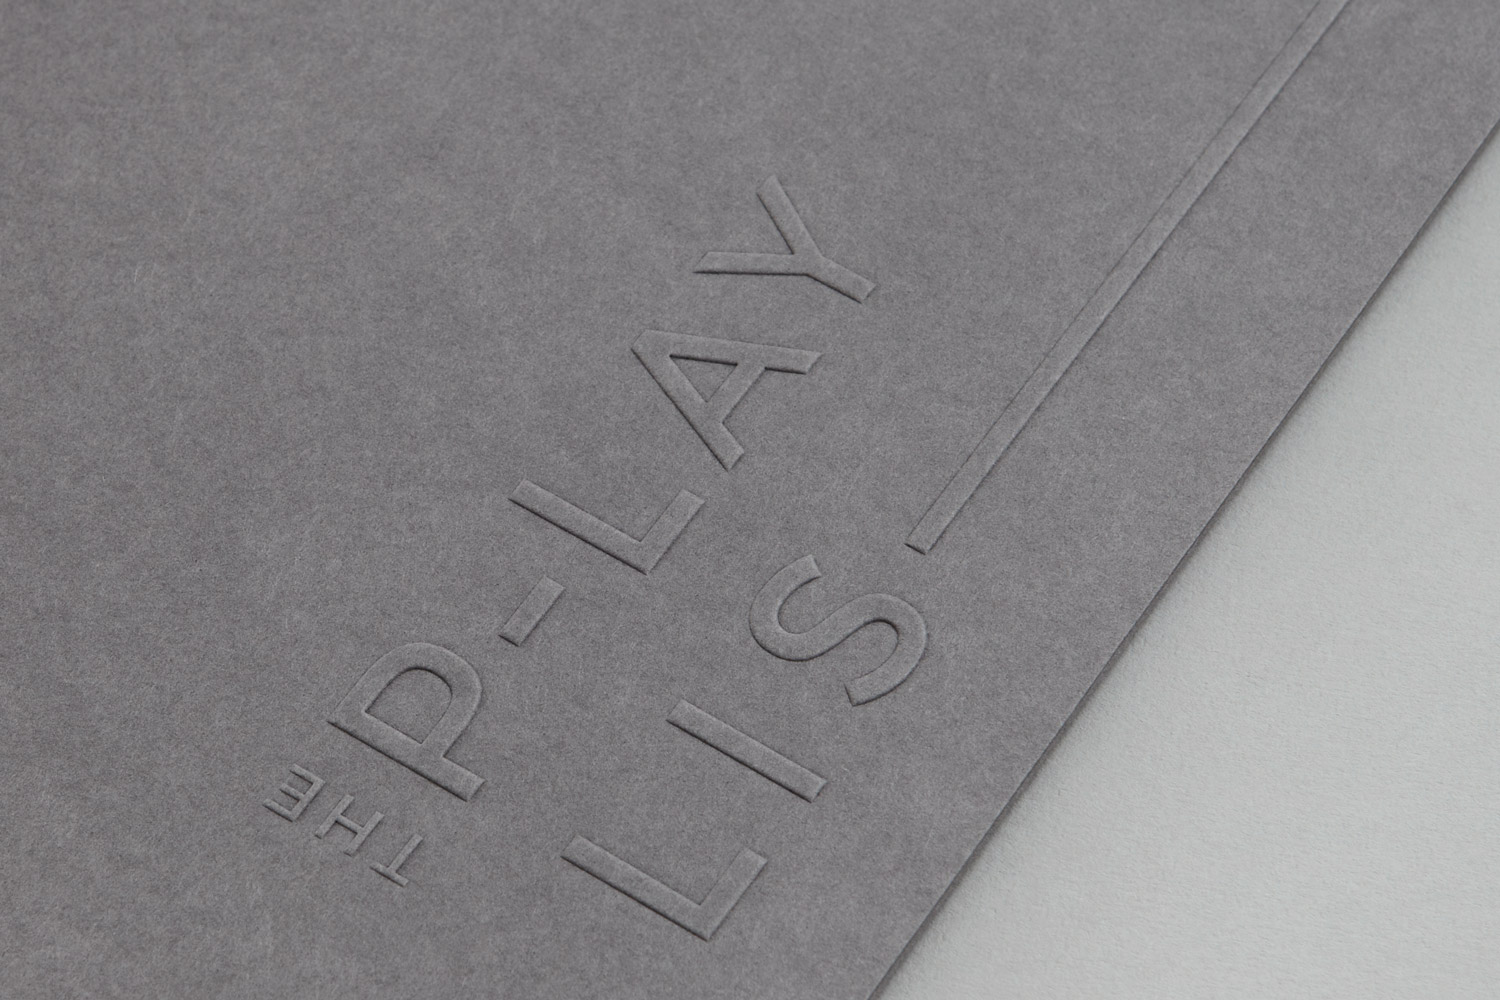 Brand identity and blind embossed folder for Toronto based custom event soundtrack business The Playlist Co. by graphic design studio Blok